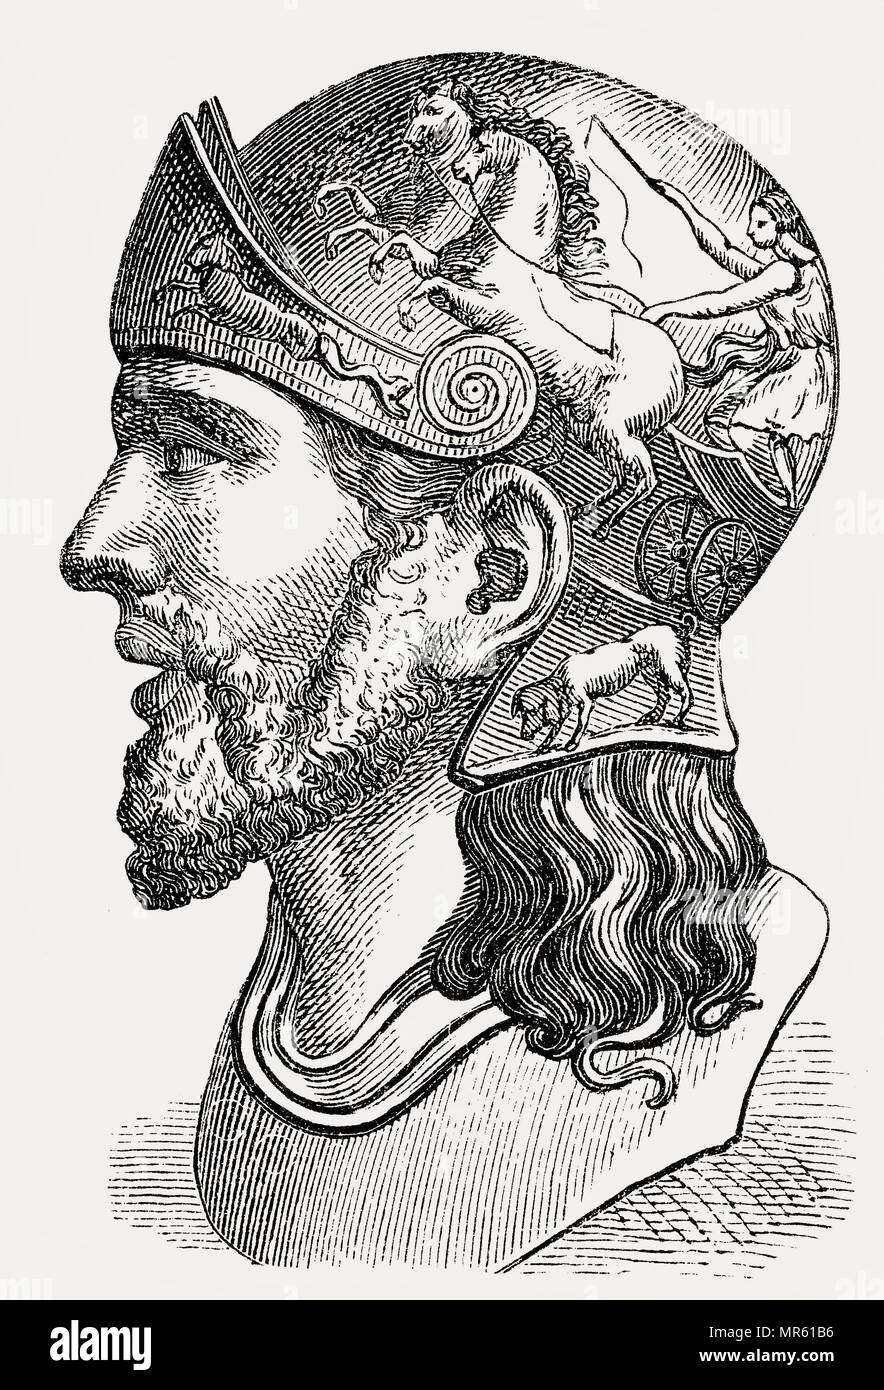 Masinissa, or Masensen, Masensen, c.238 BC – 148 BC, the first King of Numidia - Stock Image